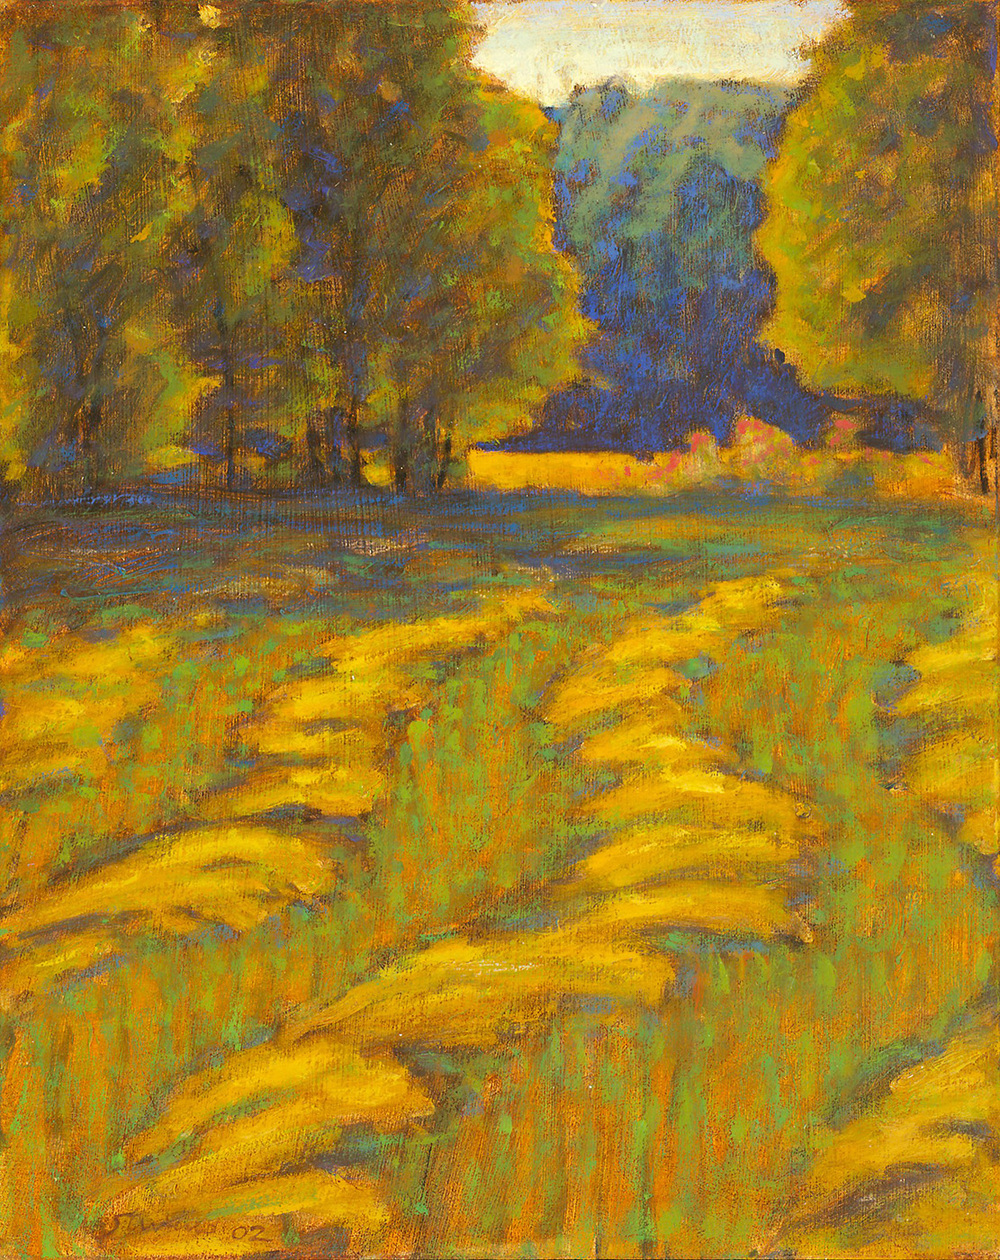 73-02   | oil on canvas | 15 x 12"